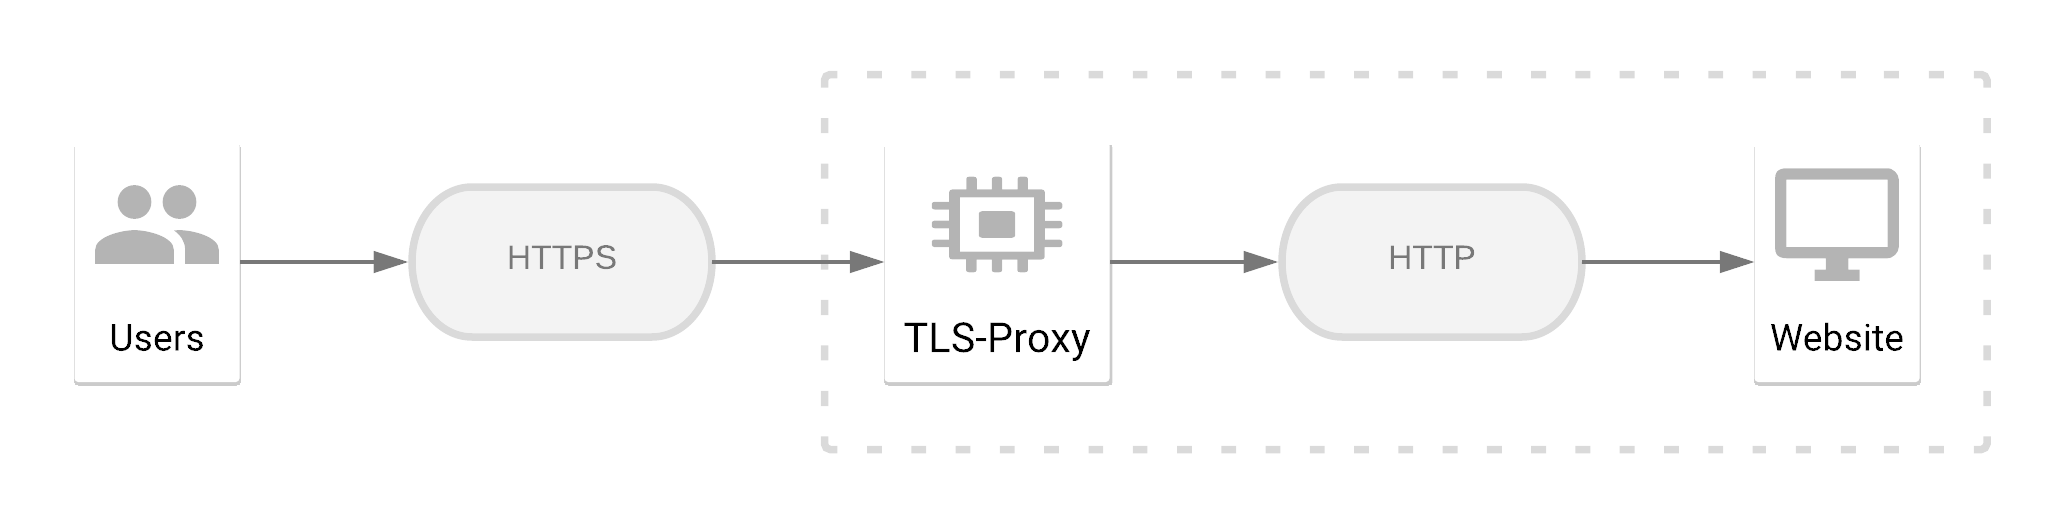 How to deploy modern TLS in 2019? - Probely